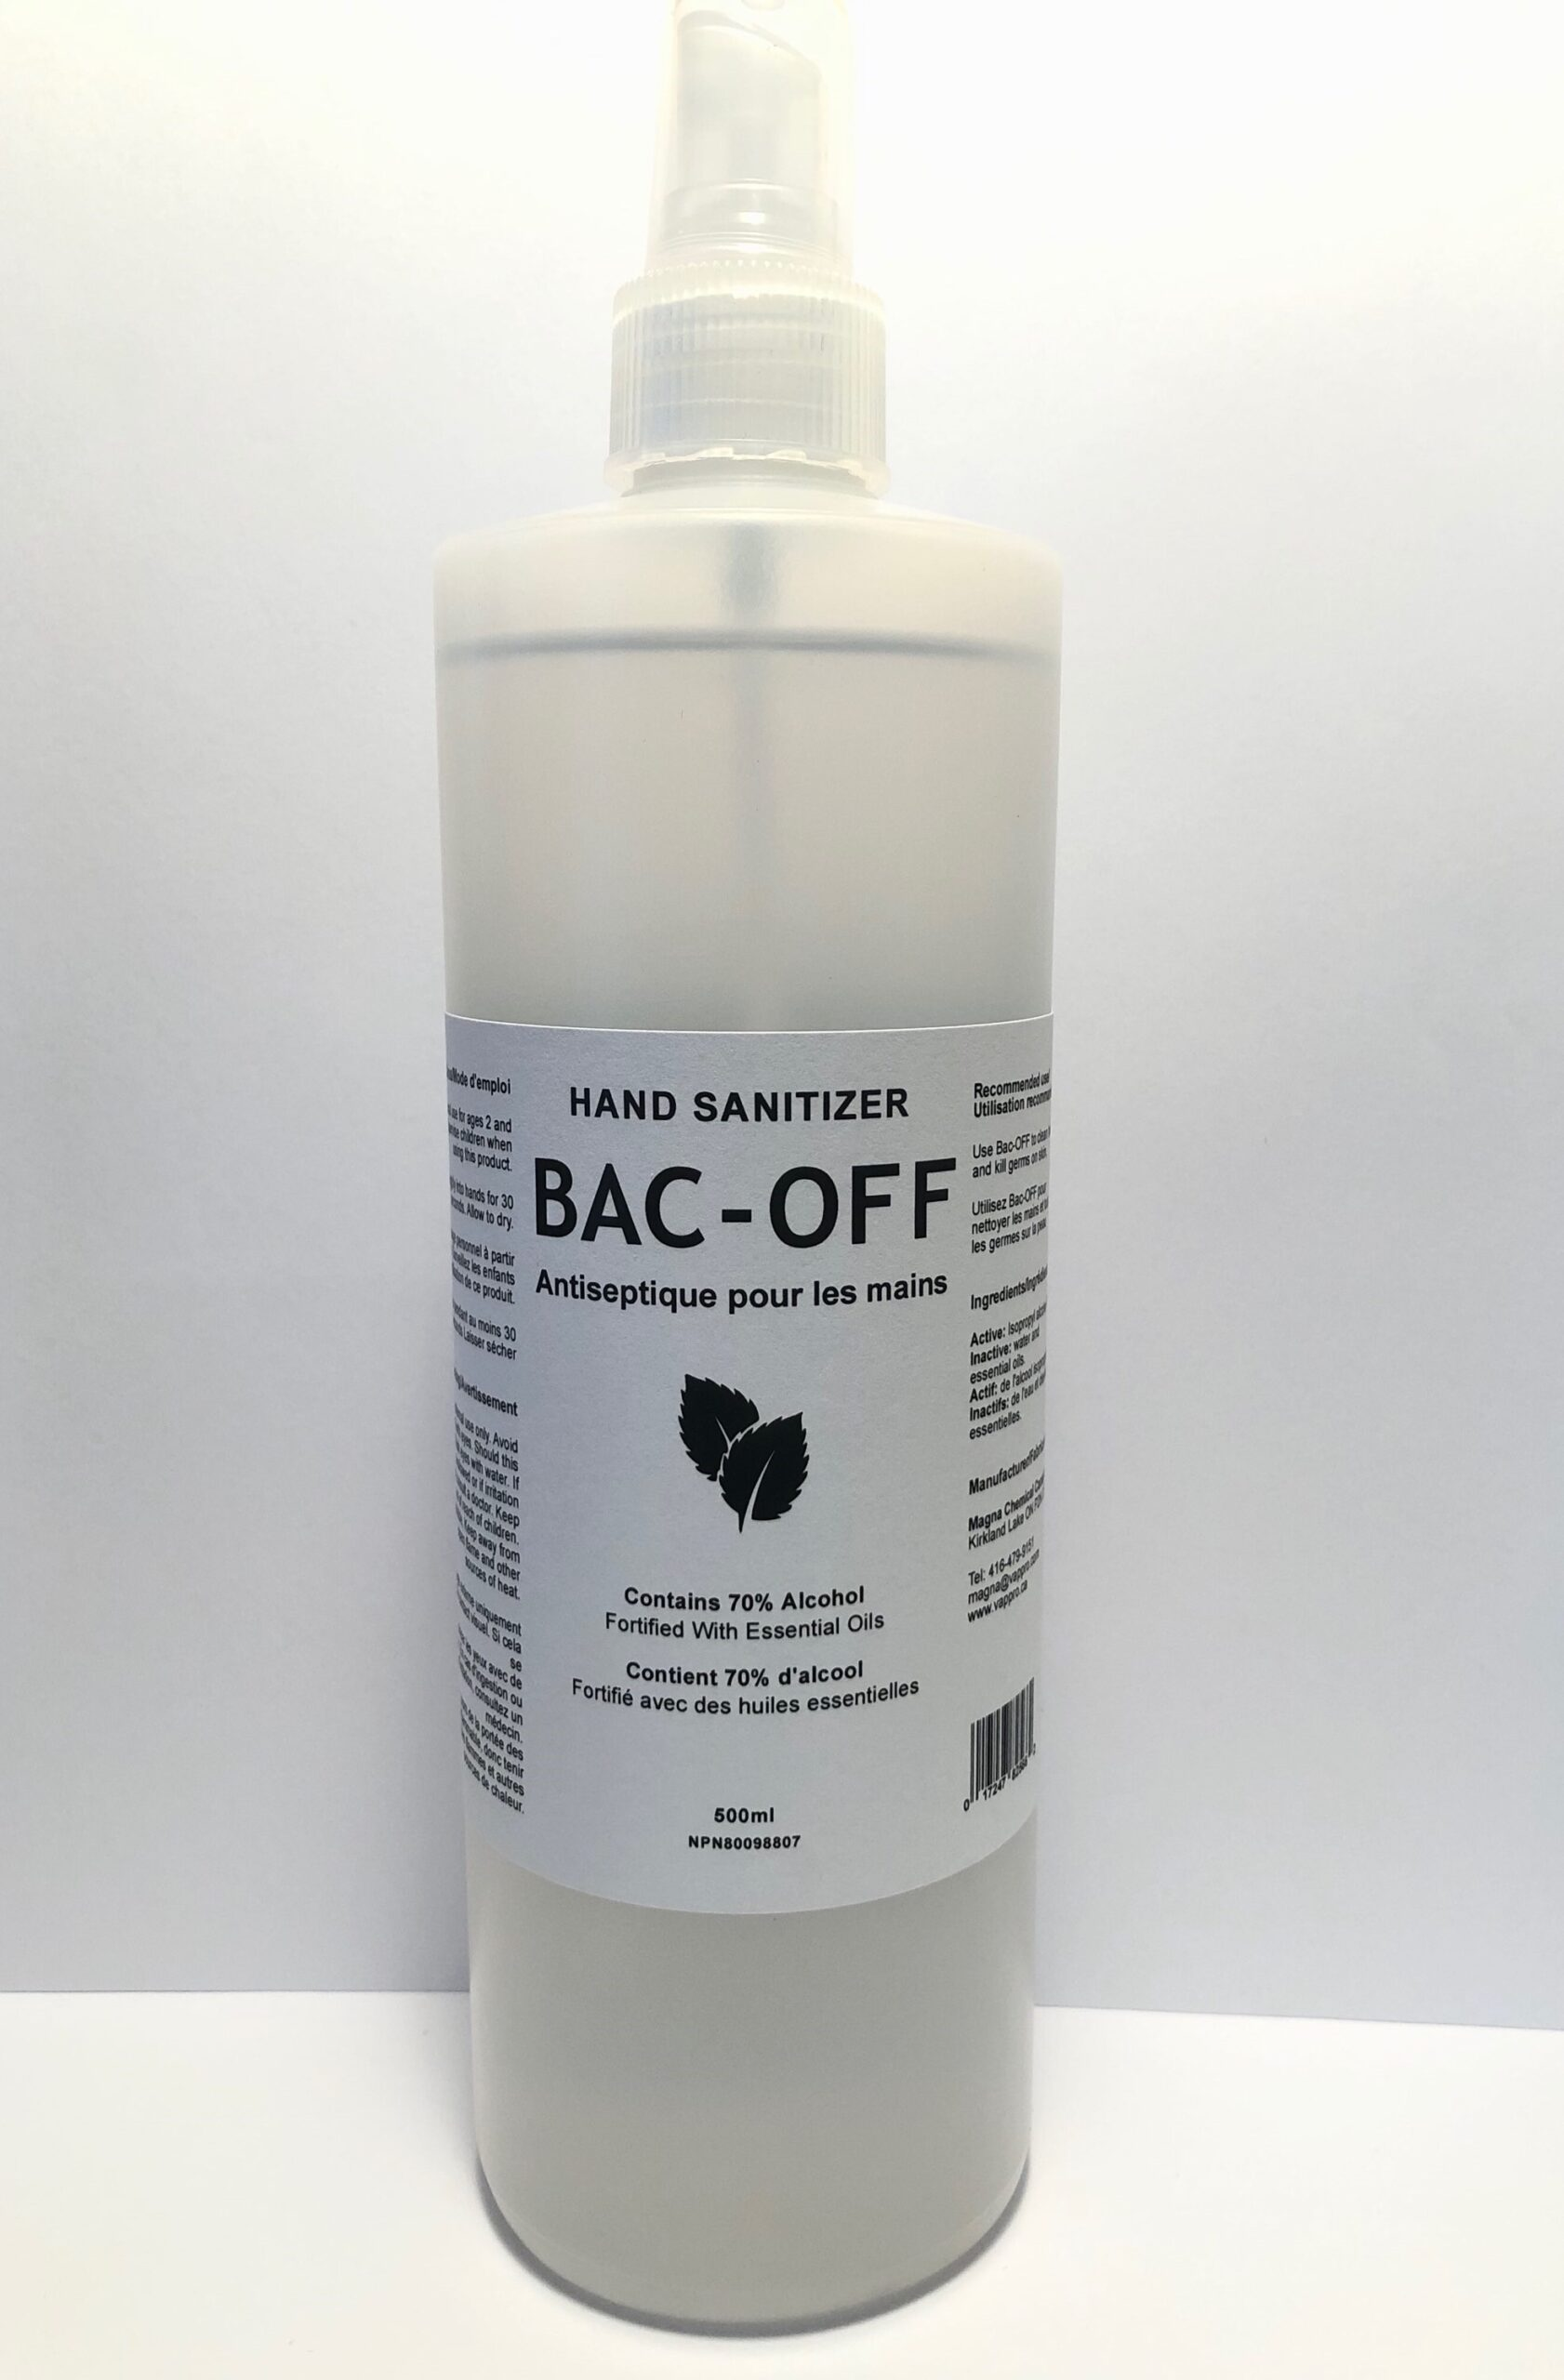 BAC-OFF Black and White Photo